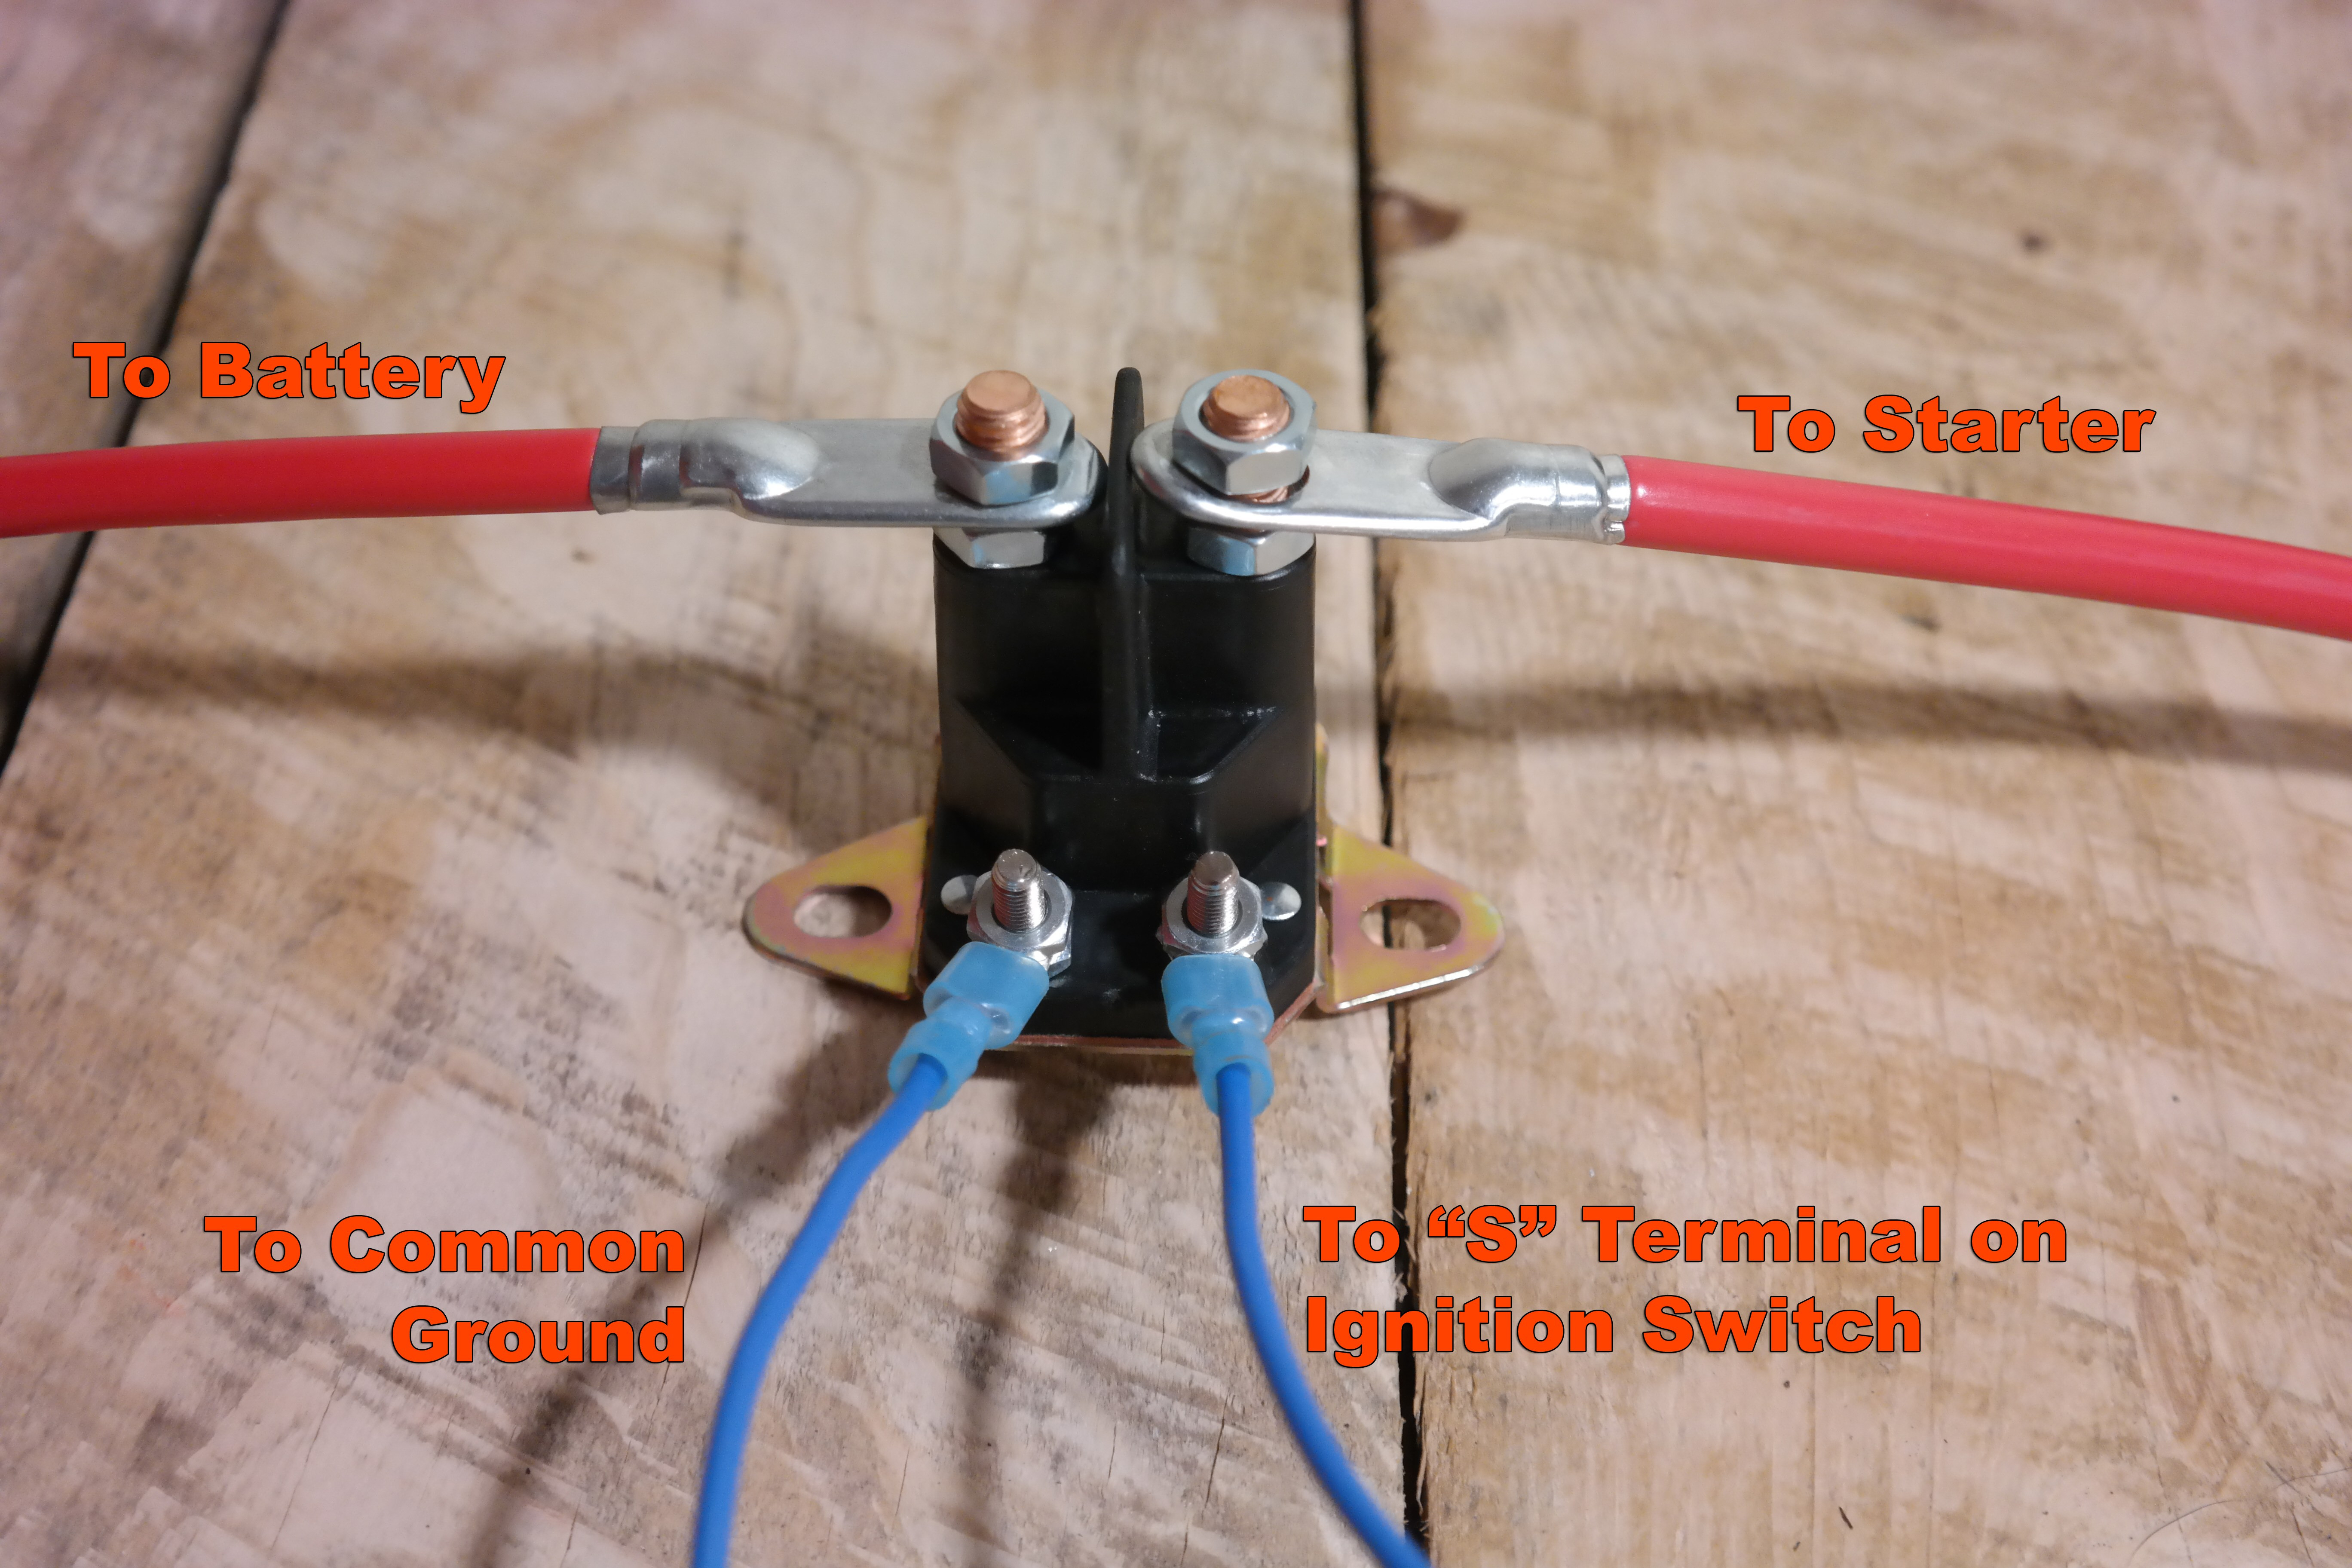 Lawn Mower Solenoid Wiring Diagram | Wiring Library - Riding Lawn Mower Starter Solenoid Wiring Diagram